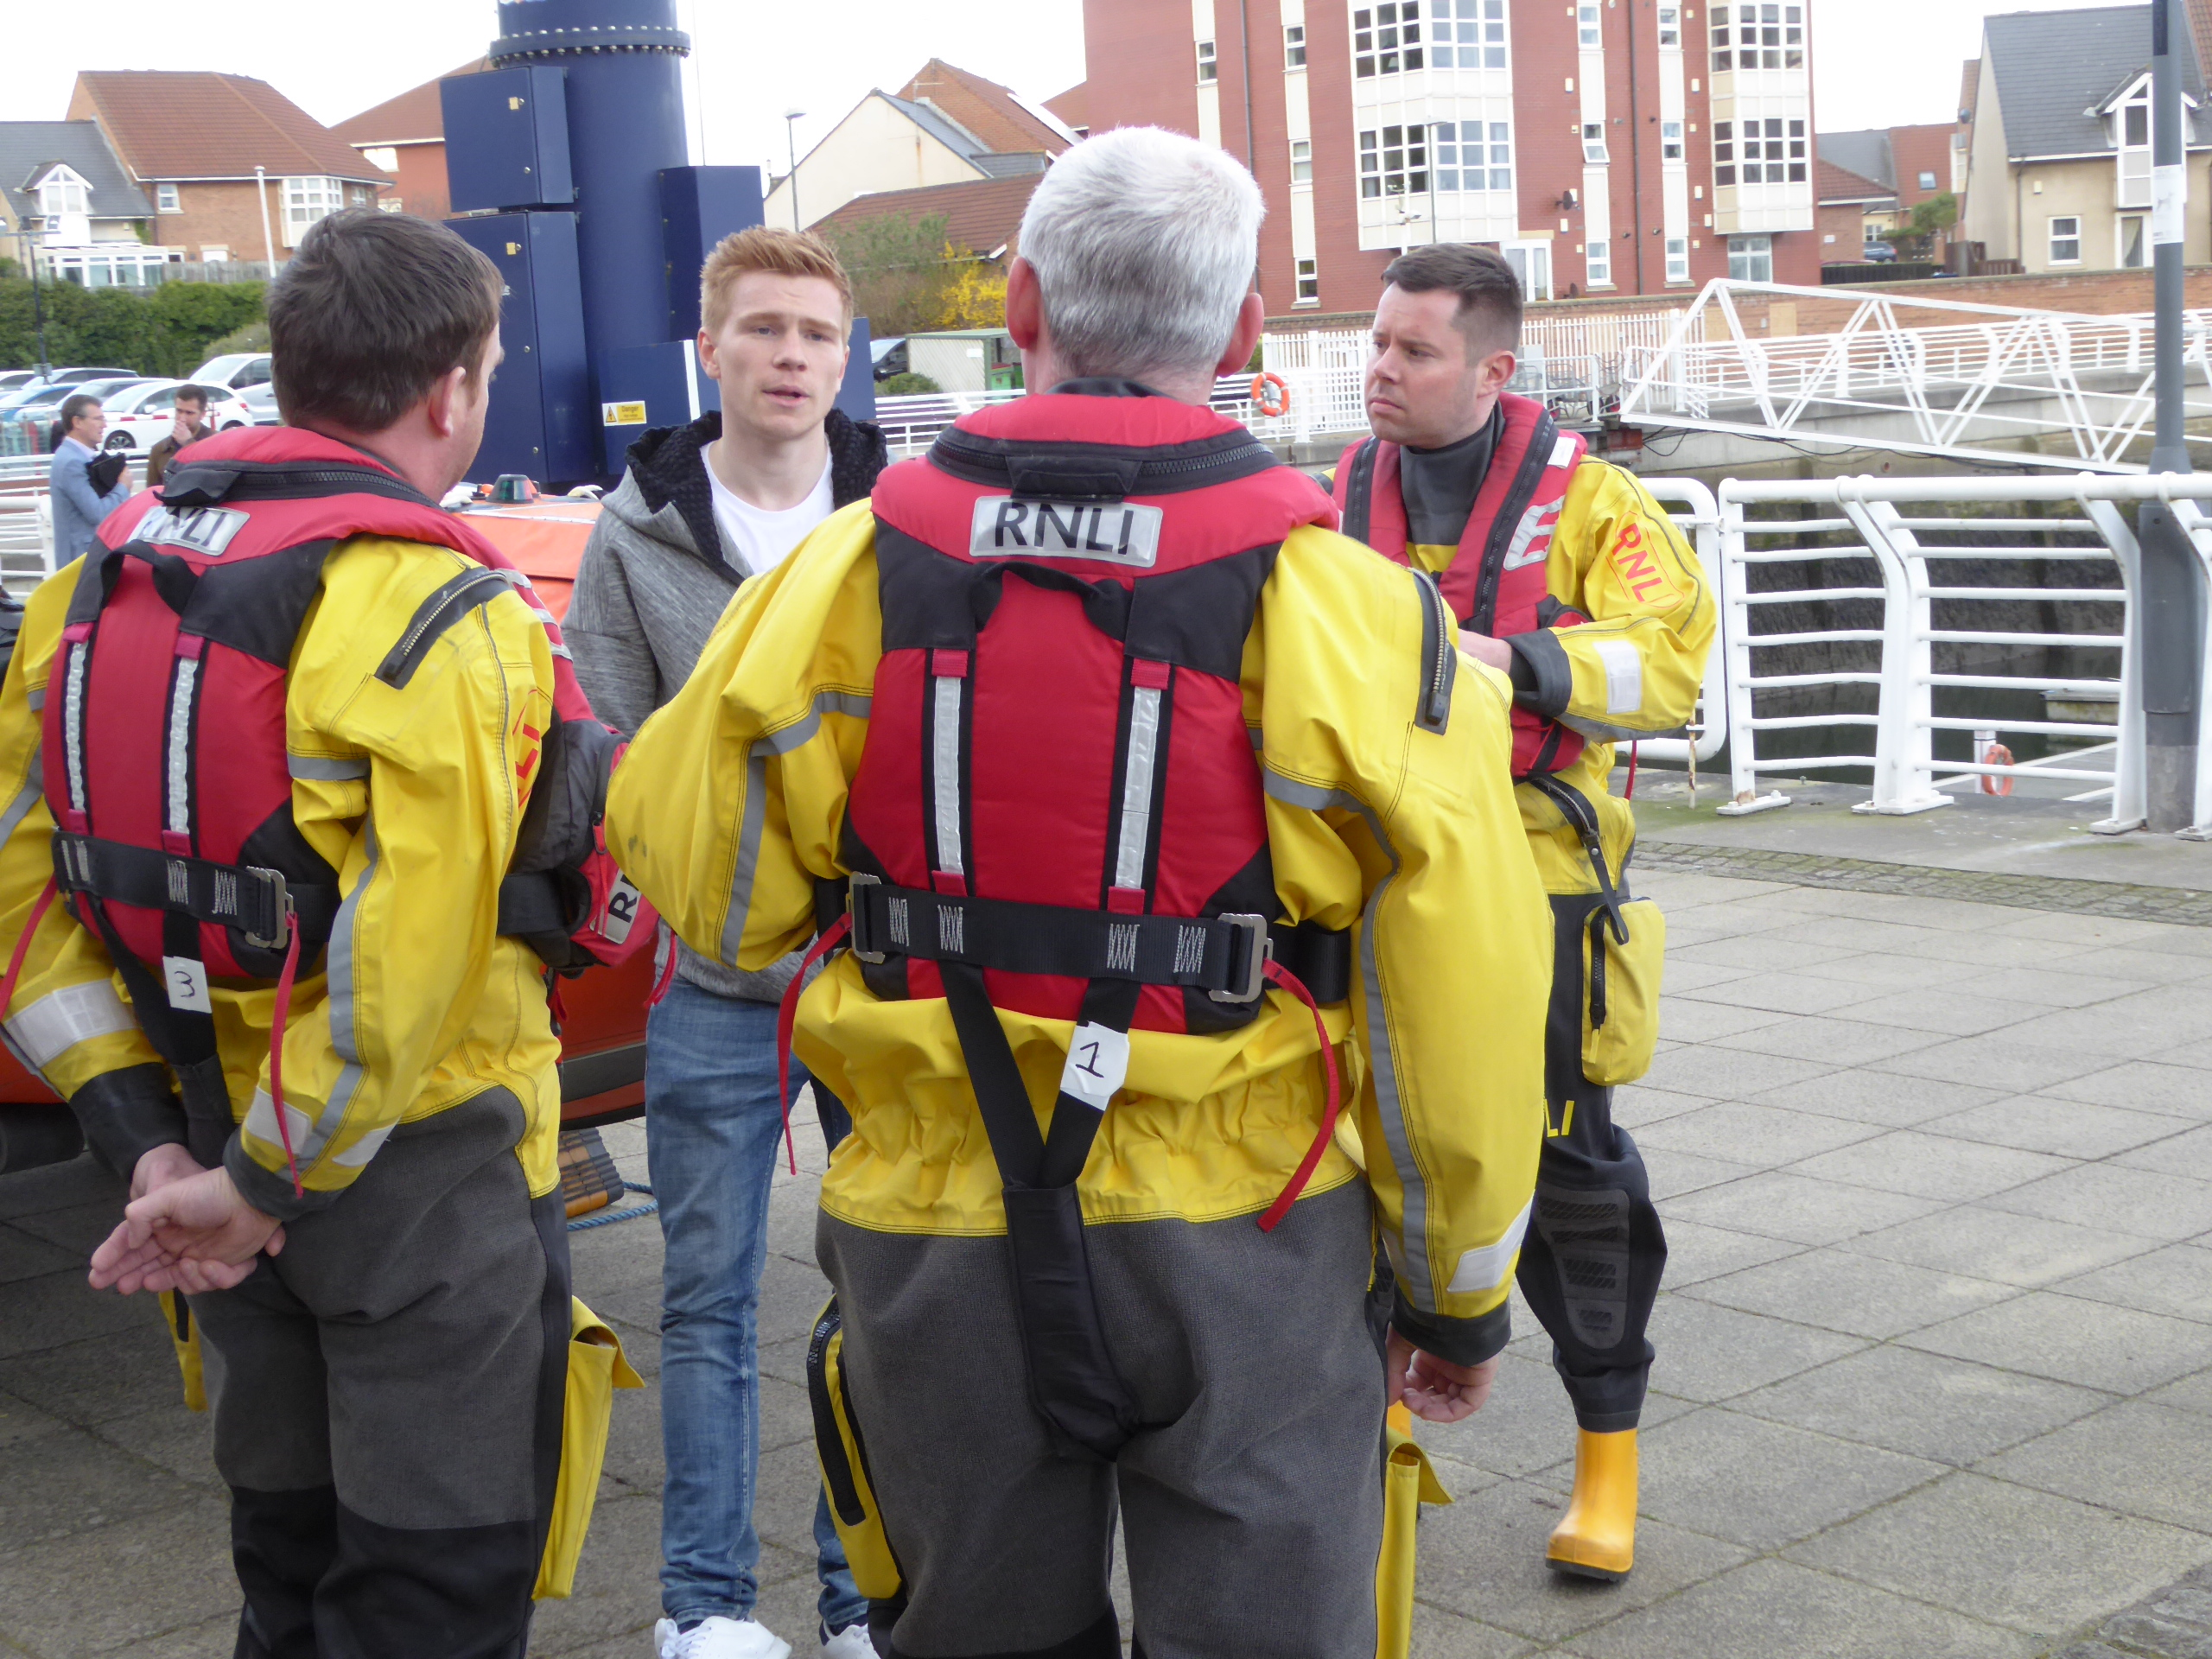 Duncan Watmore talking to Sunderland RNLI volunteers (Mark Cleminson, Andrew McGill, and Paul Nicholson) during his visit